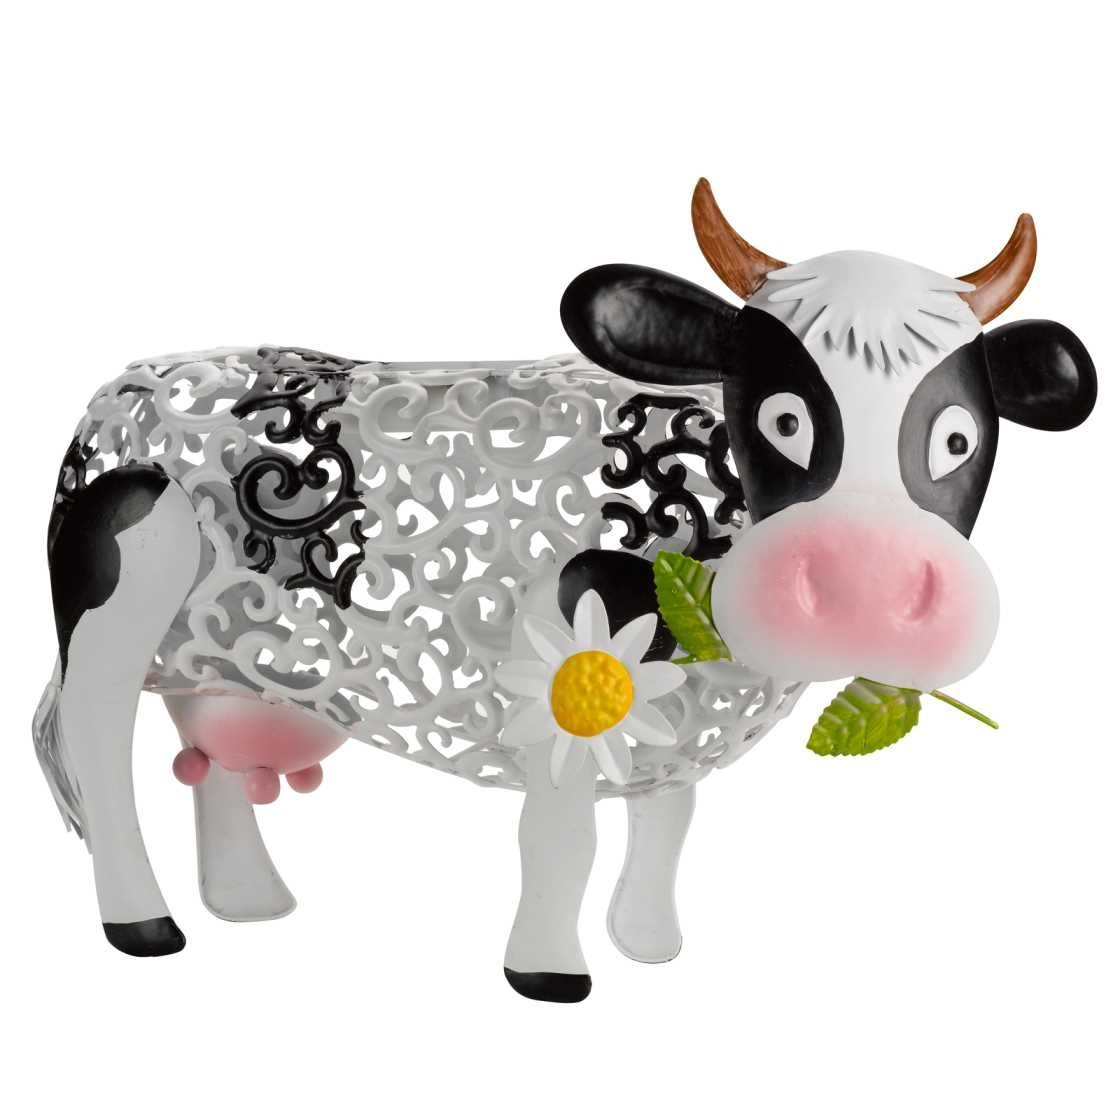 Smart Garden Metal Silhouette Solar Light - Daisy Cow